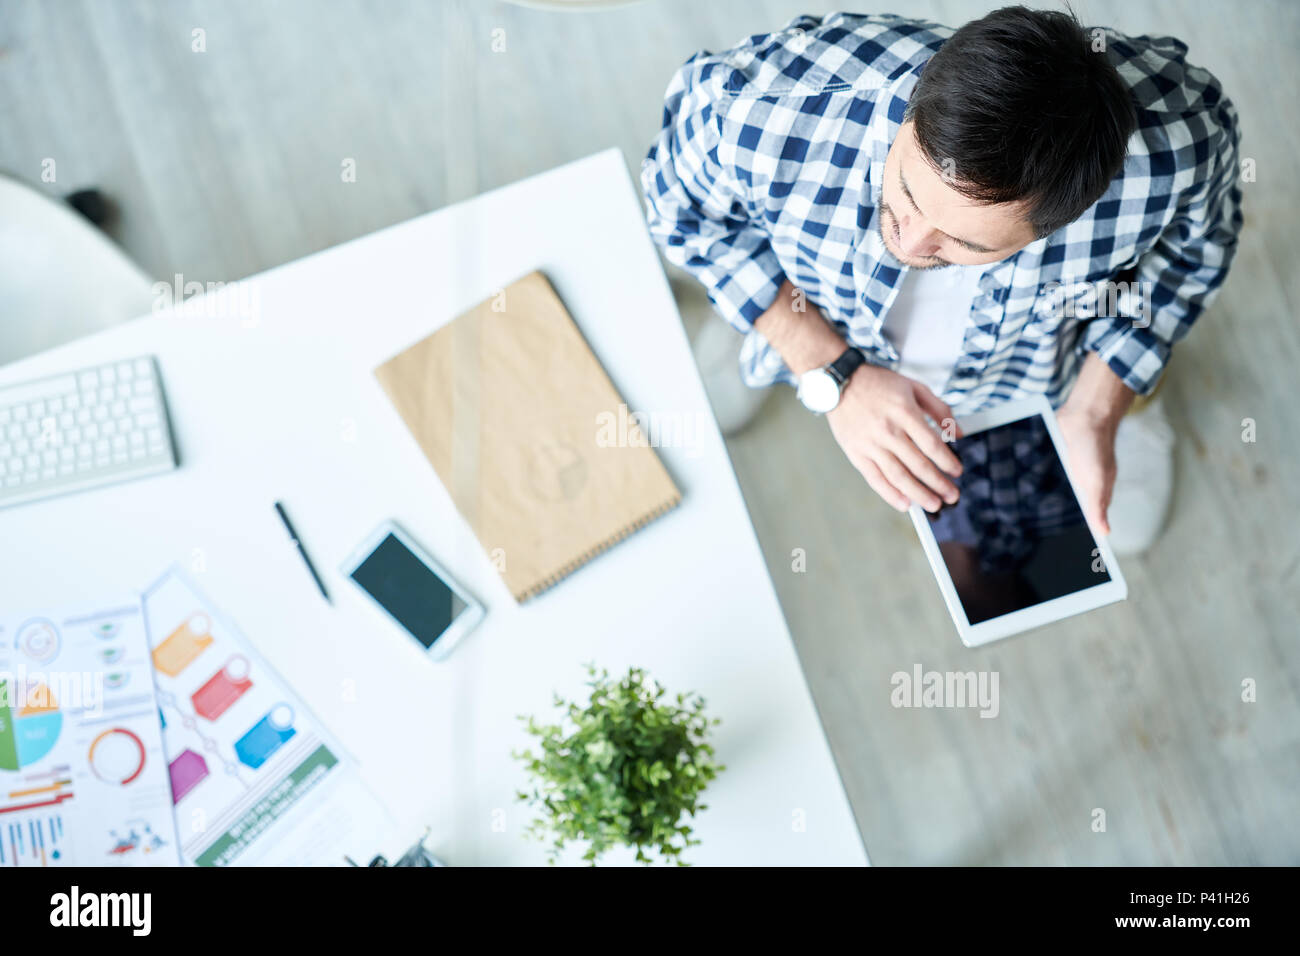 Man with tablet at working space - Stock Image